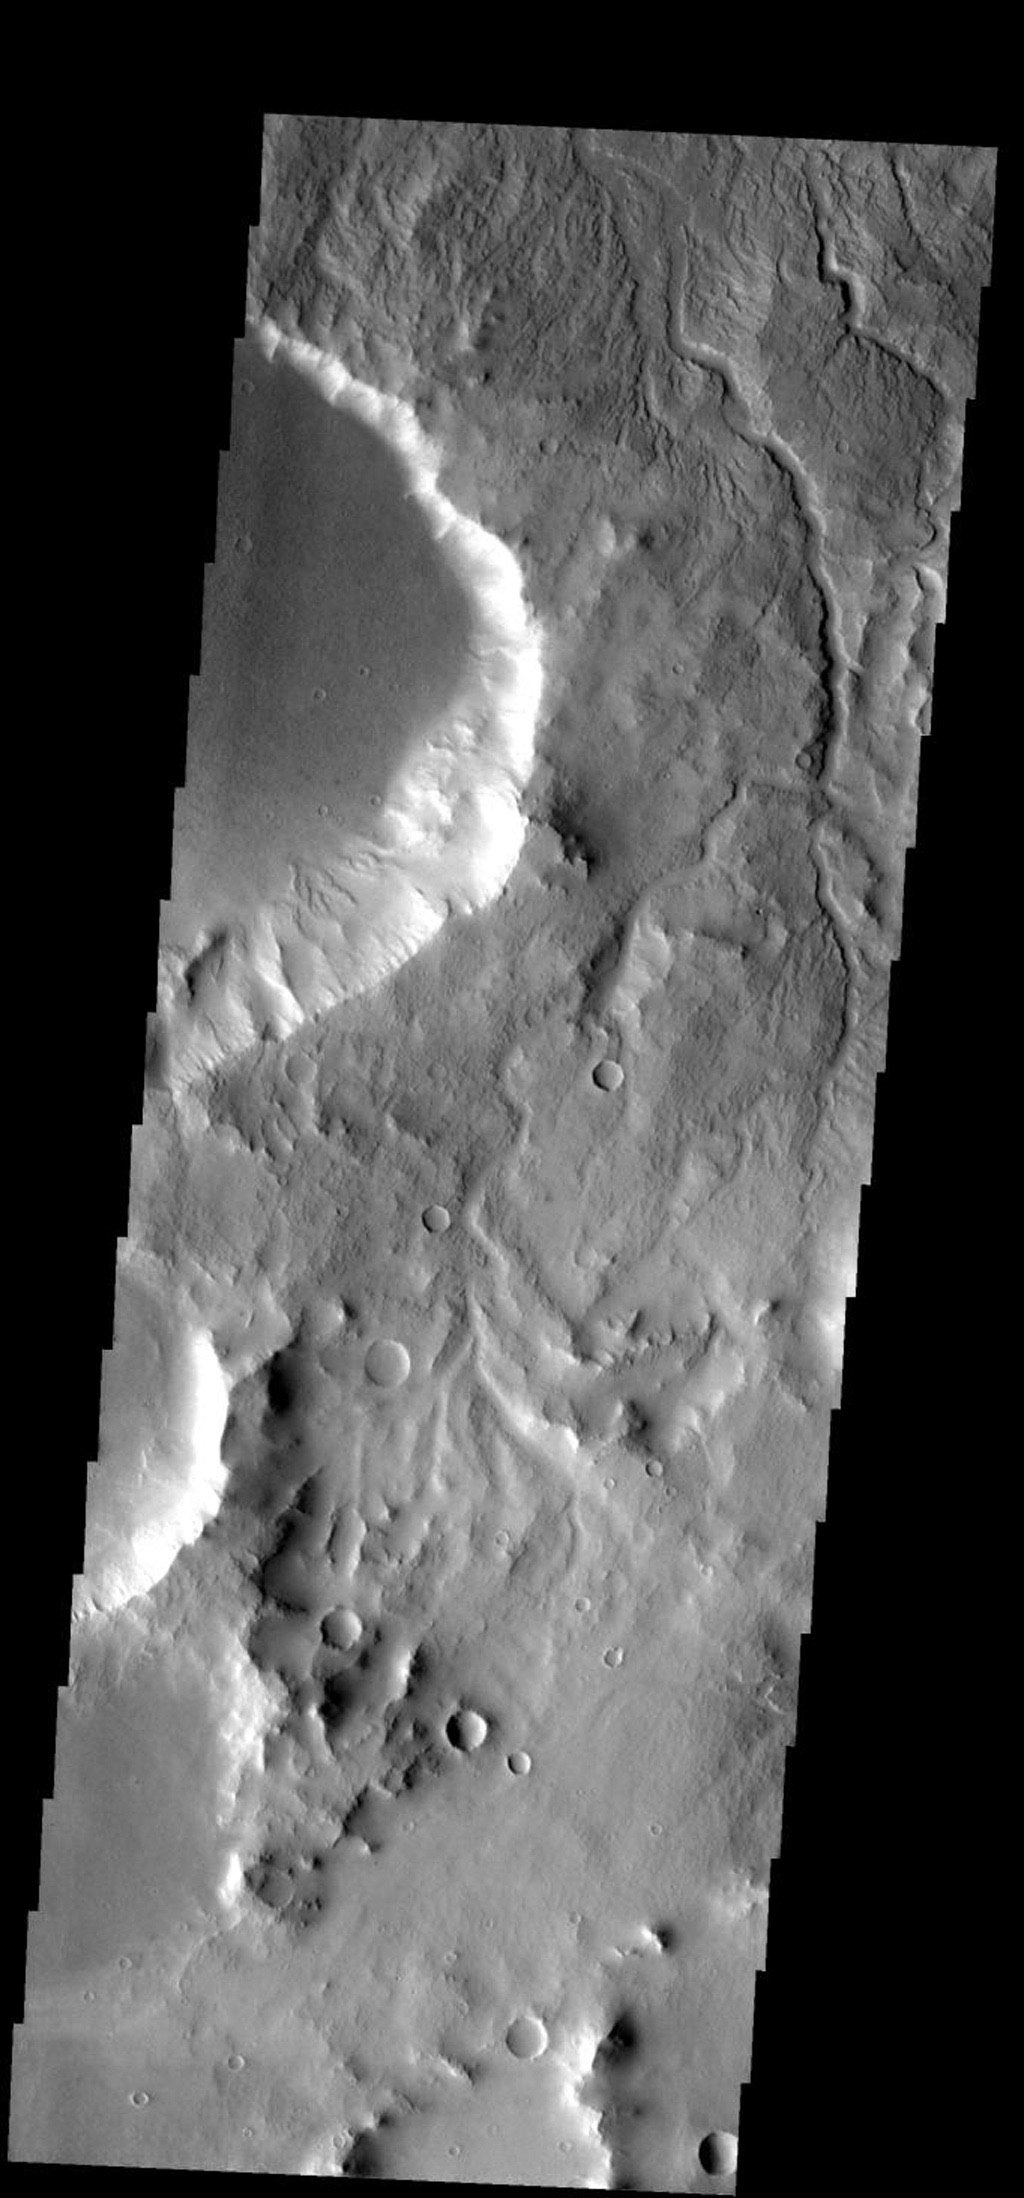 The many small channels dissecting the top part of this image are drainage valleys on Mars. Most are draining downhill to the top of the image as seen by NASA's 2001 Mars Odyssey.